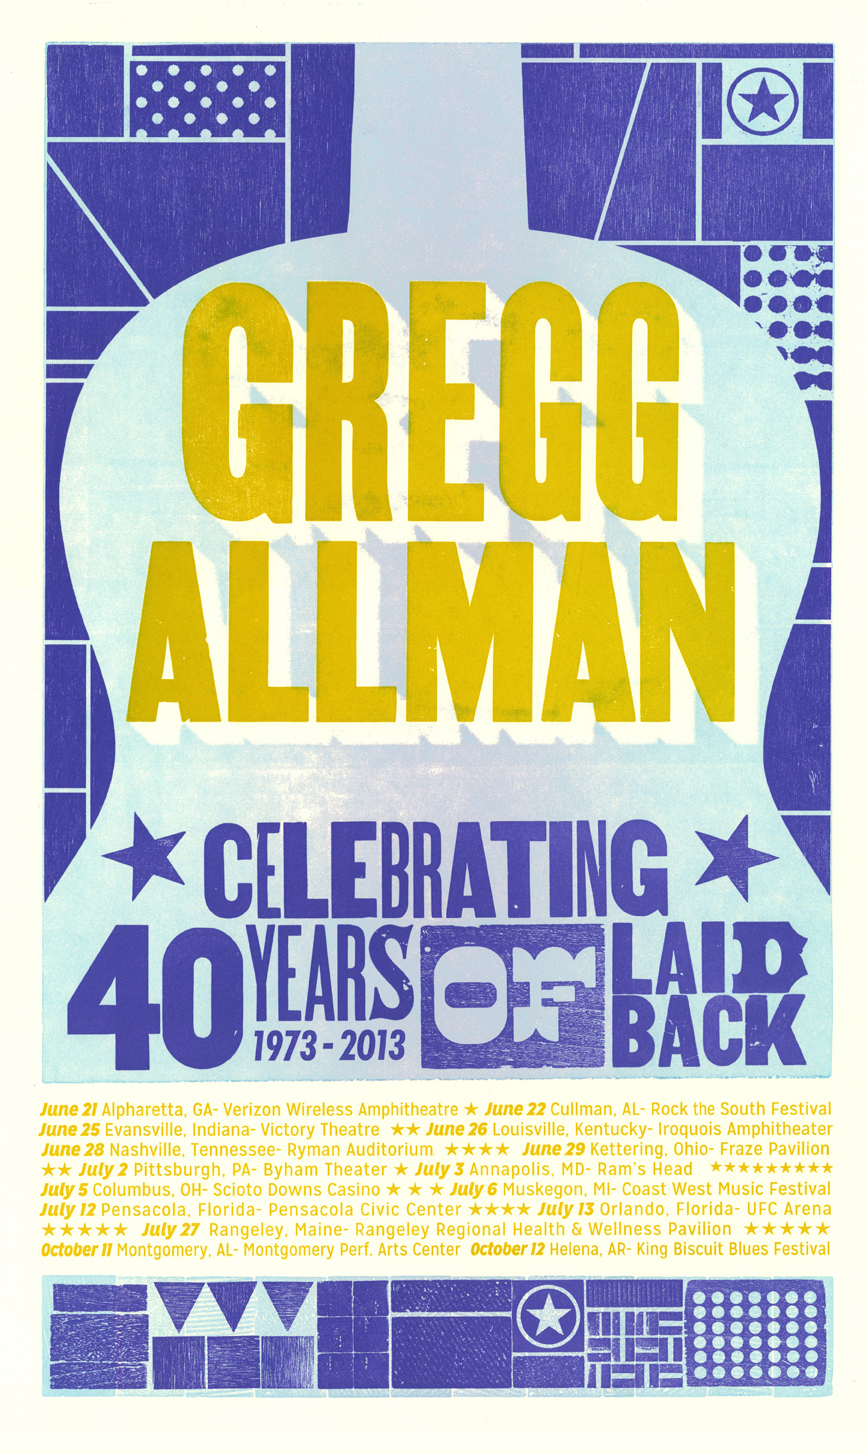 Gregg Allman, 3-color letterpress tour poster, 2013